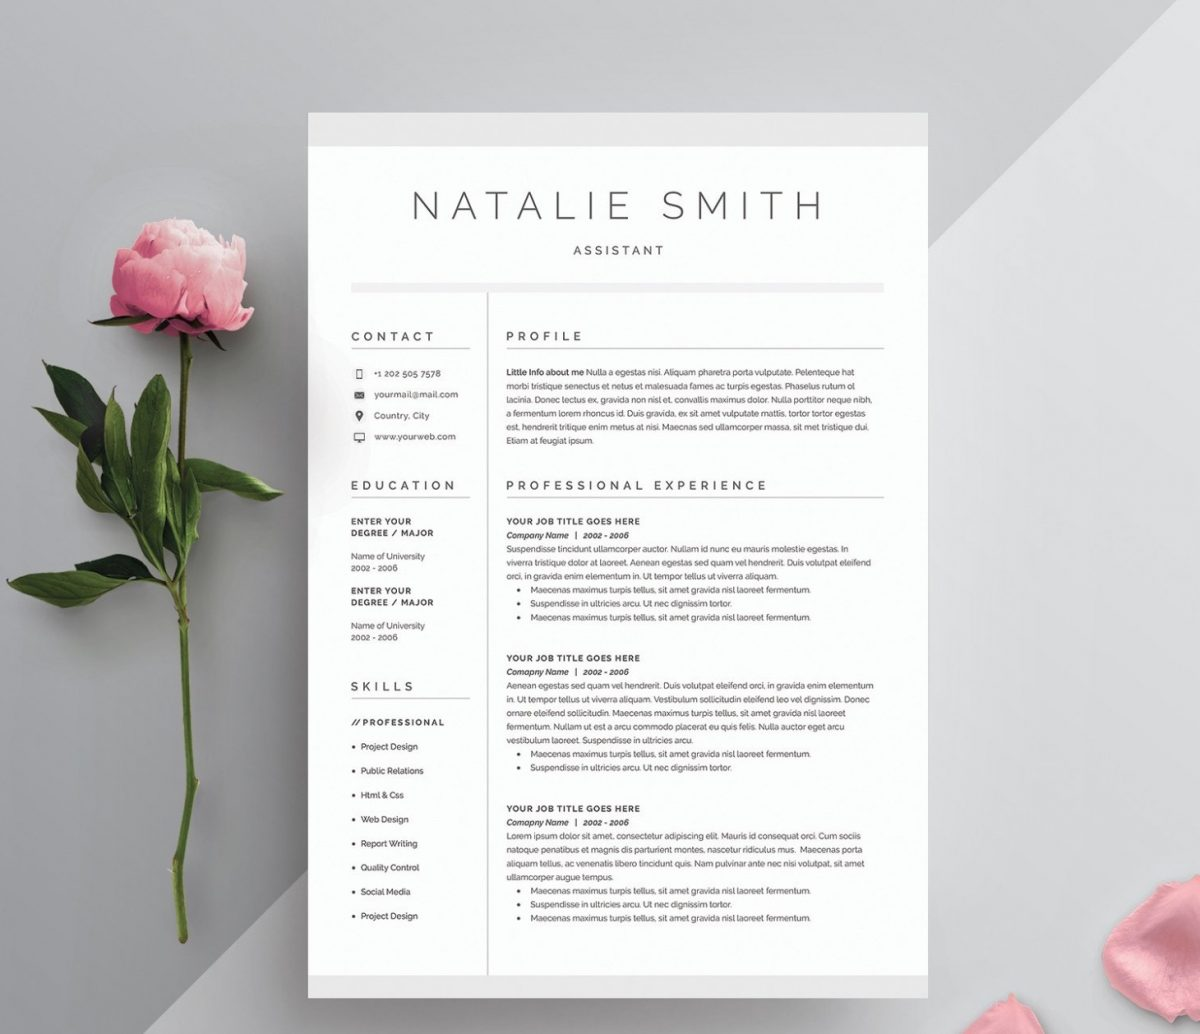 Word Resume and Cover Letter Template